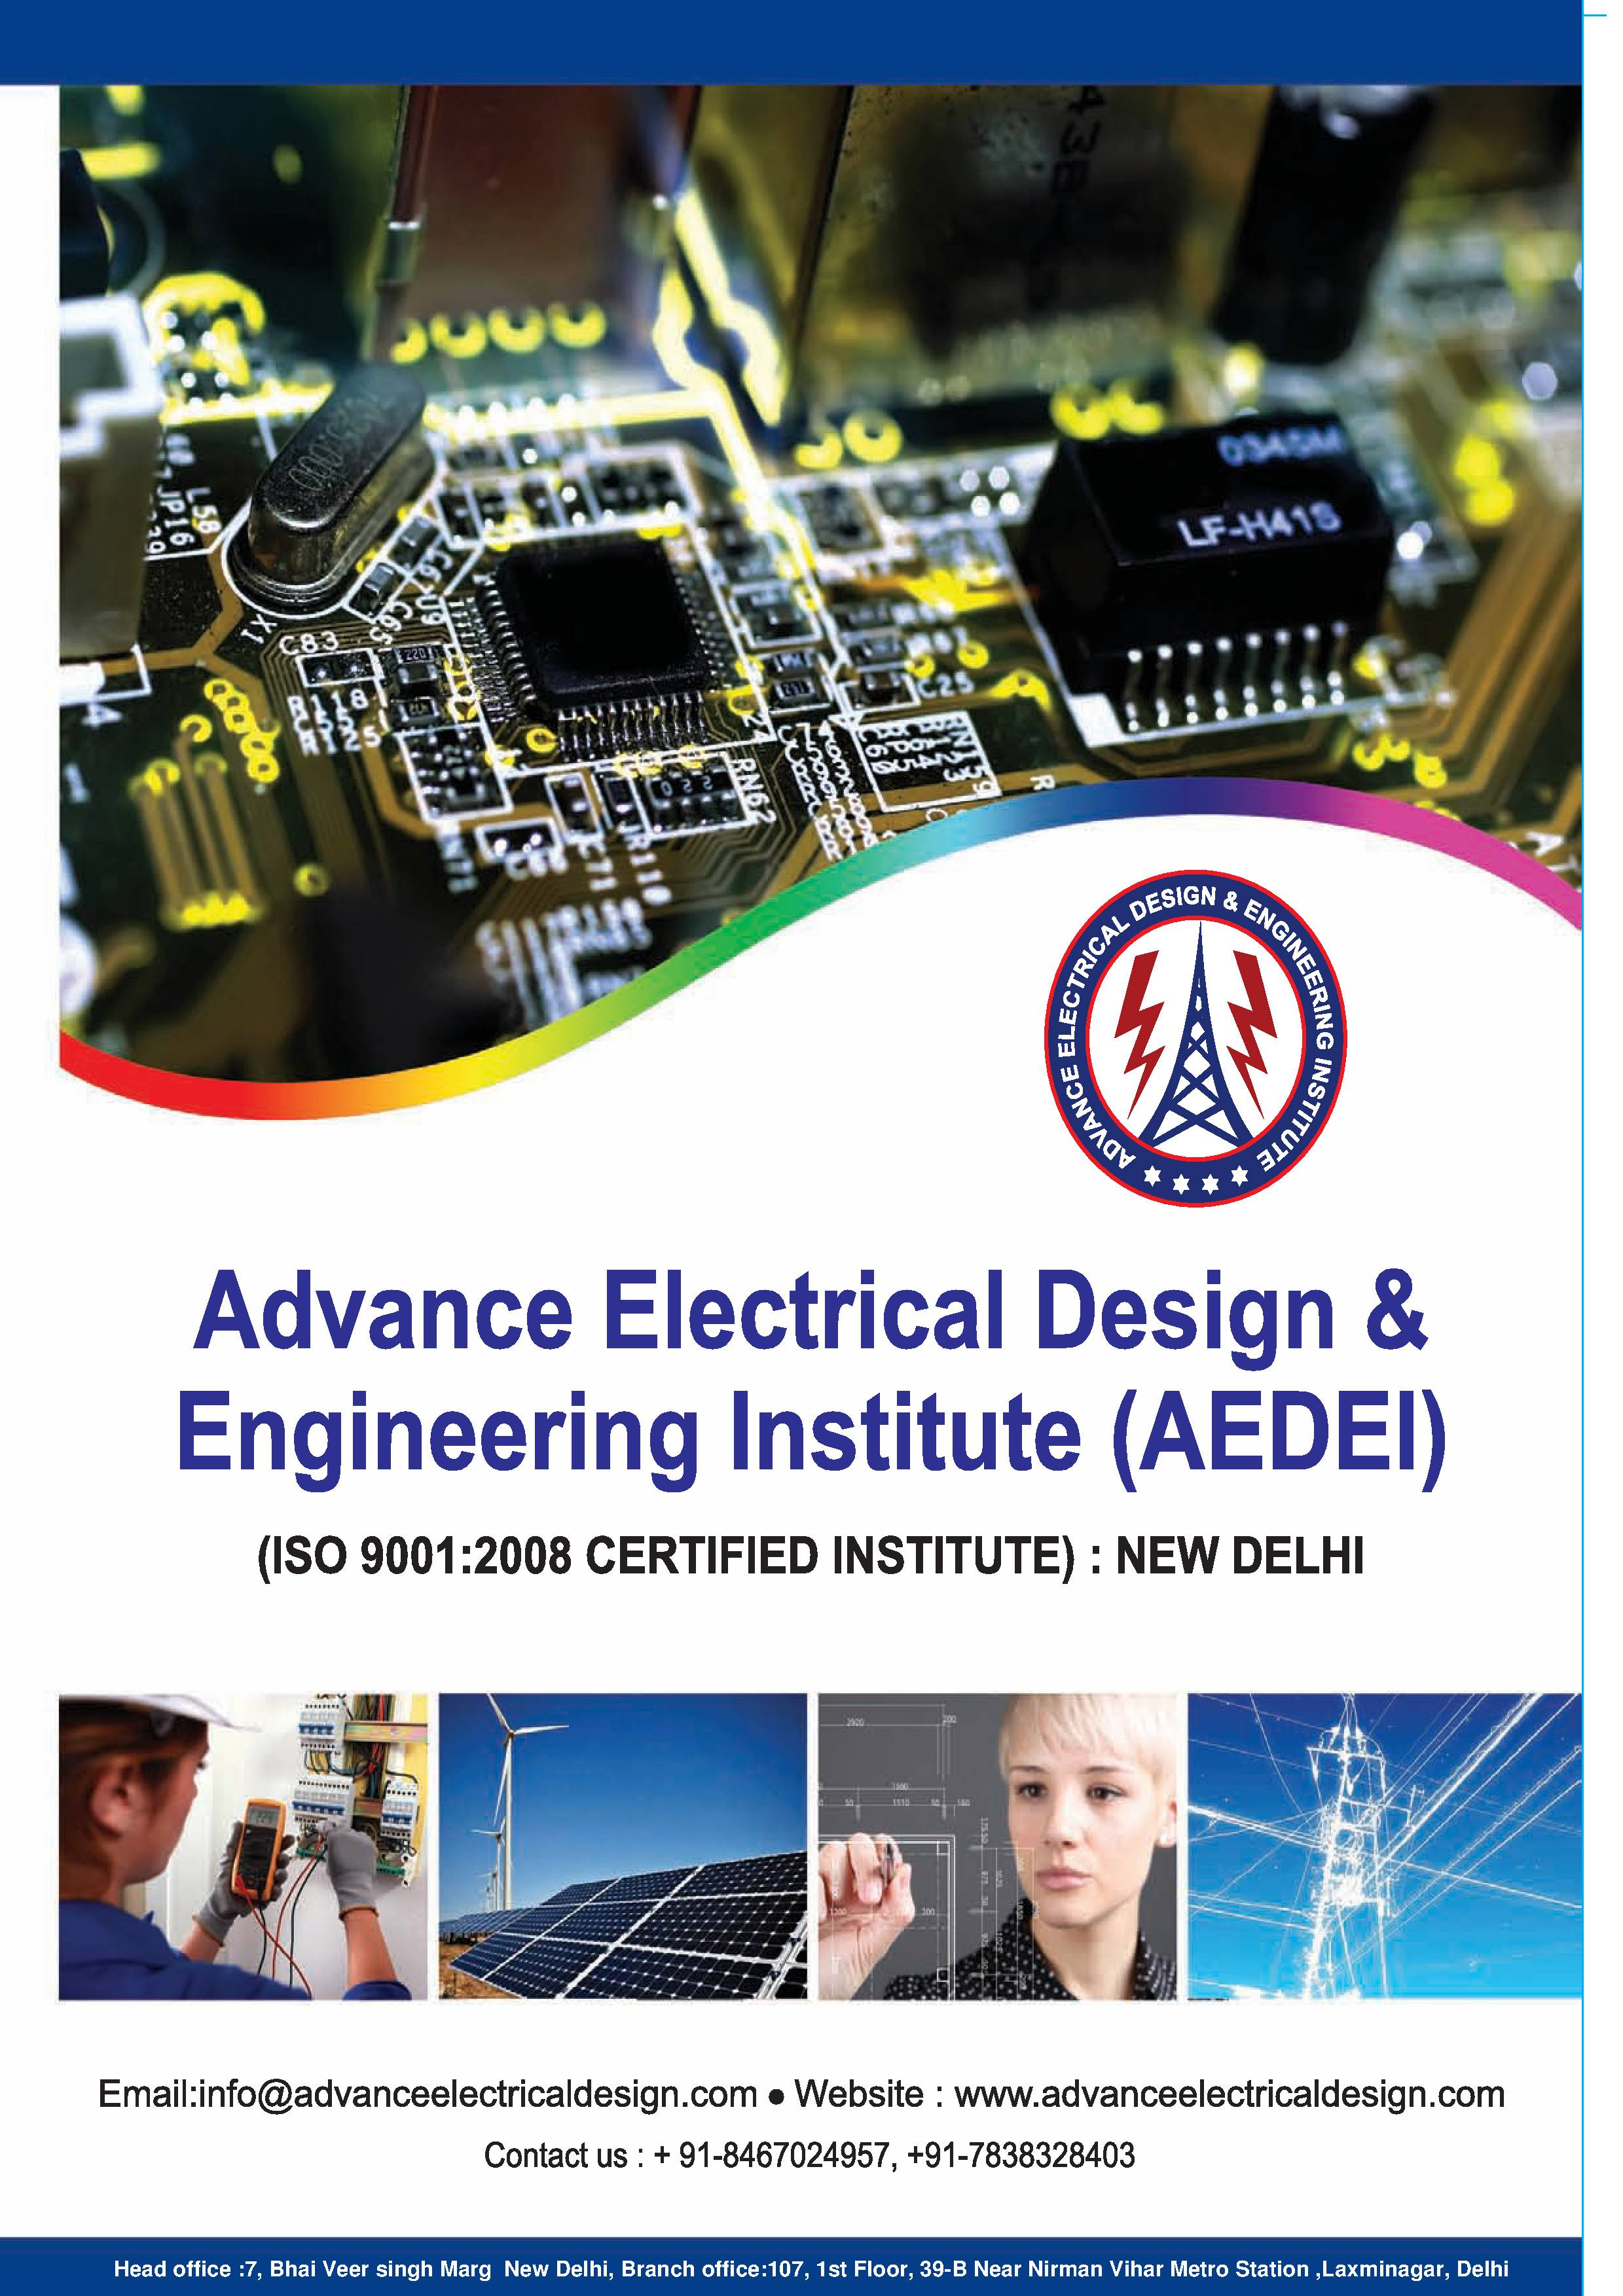 syllabus-advance-electrical-design-institutue